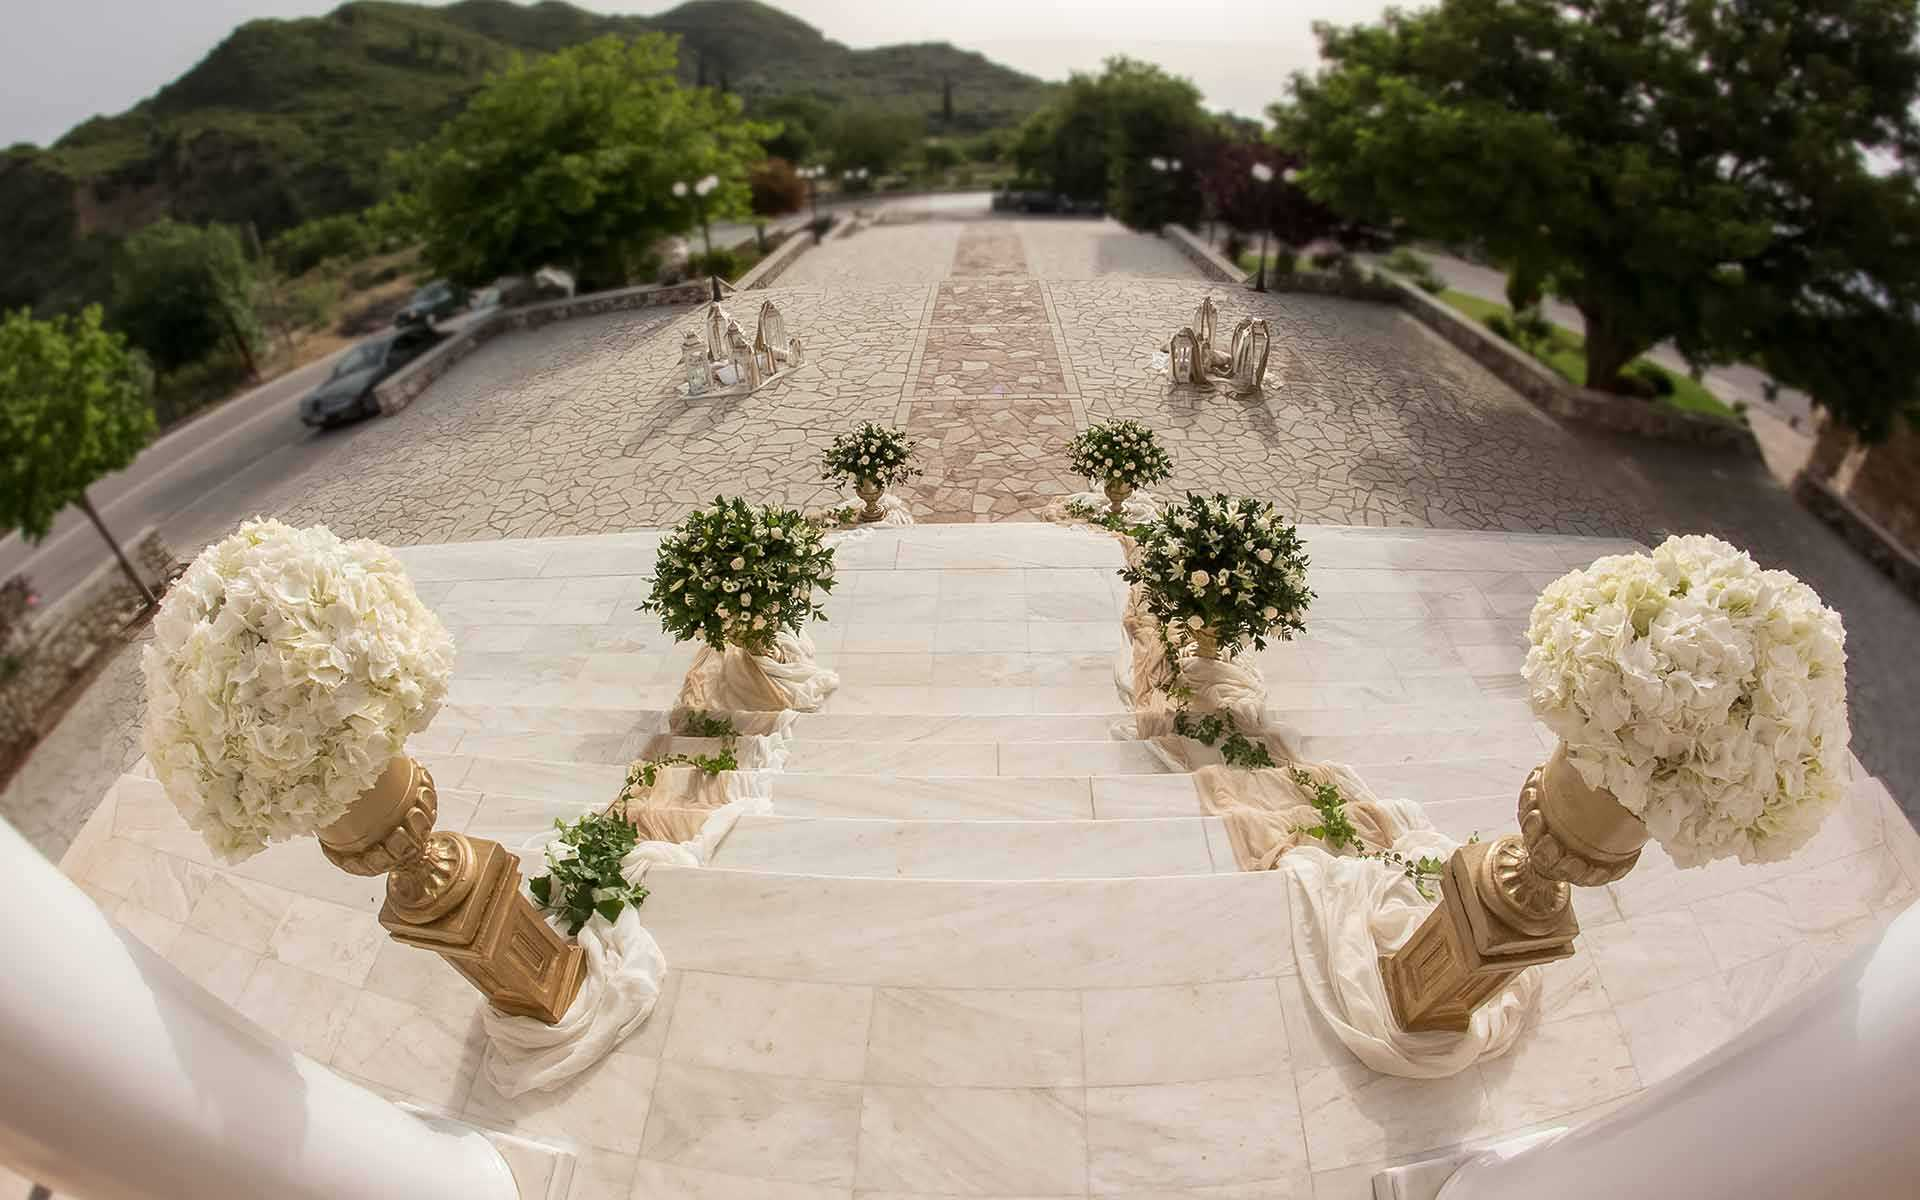 Diamond Events - Luxury Wedding & Event Planning Services in Greece, santorini